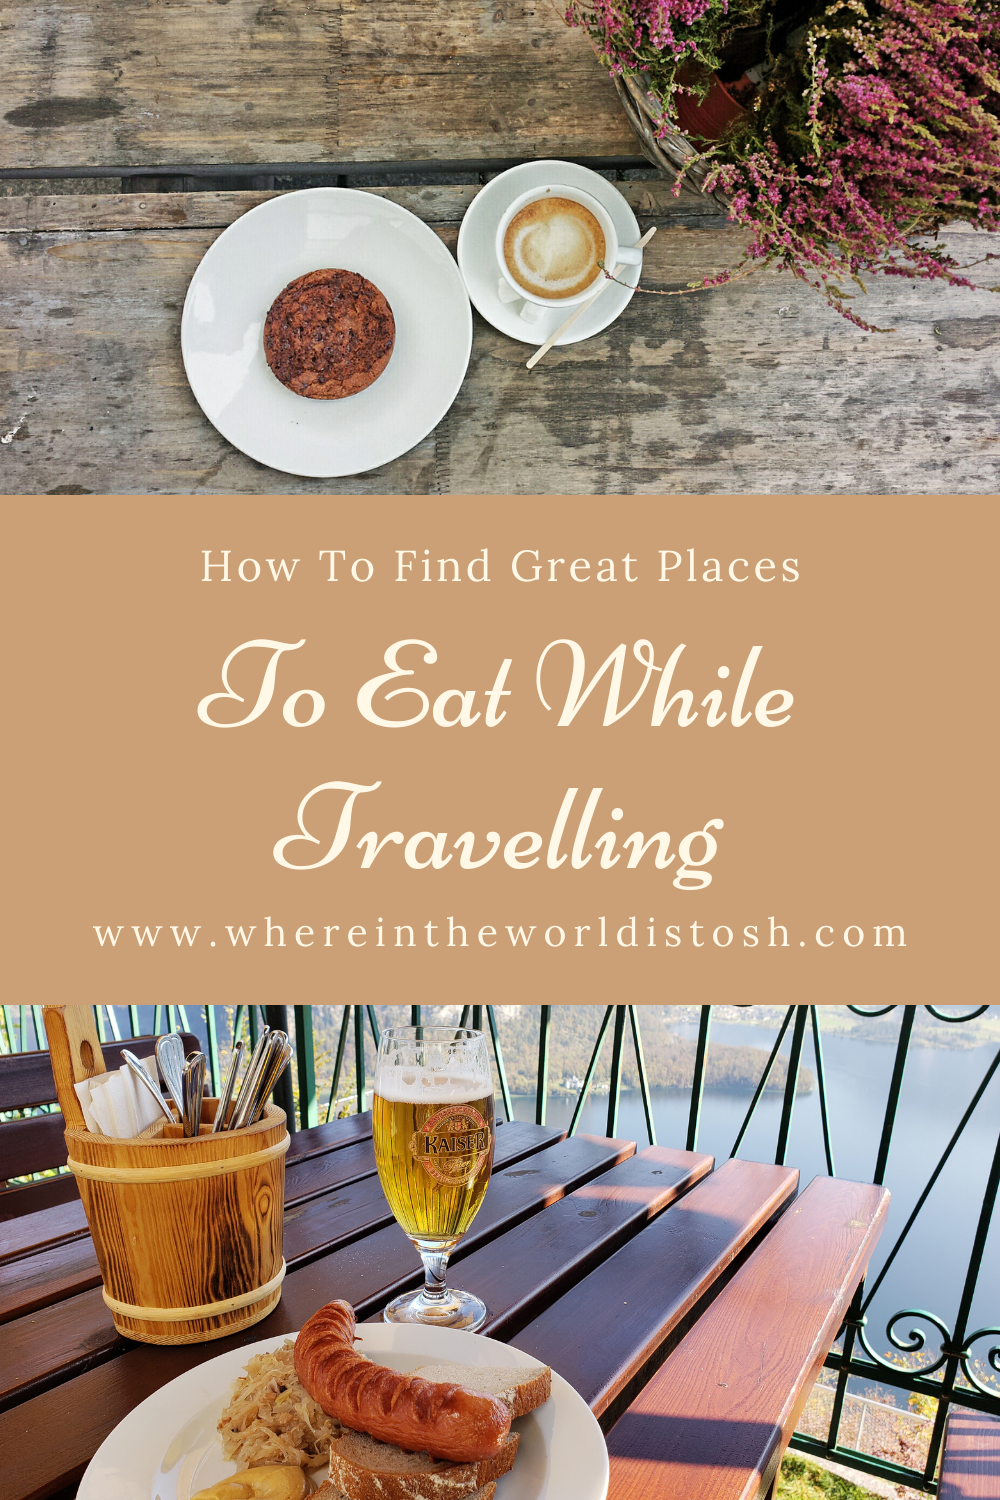 How To Find Great Places To Eat While Travelling